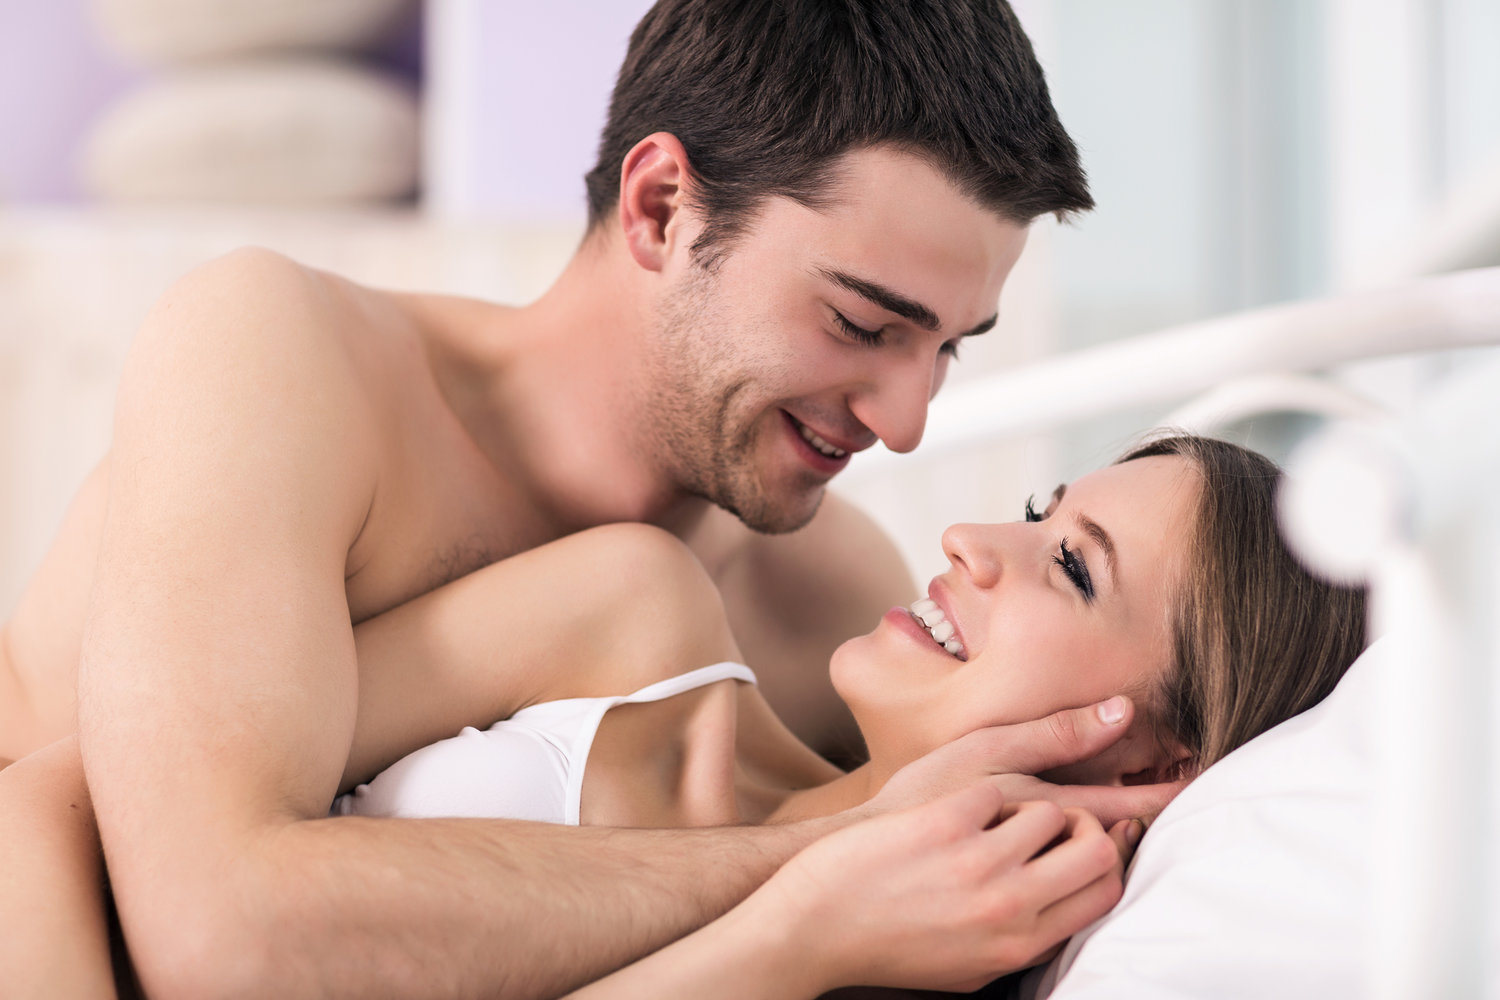 East Bay Intimacy & Sex Therapy Center's - leading sex therapists, clinical psychologists and couples counselors assist individuals and couples in exploring & expressing their sexuality and emotional needs in a safe and supported environment.